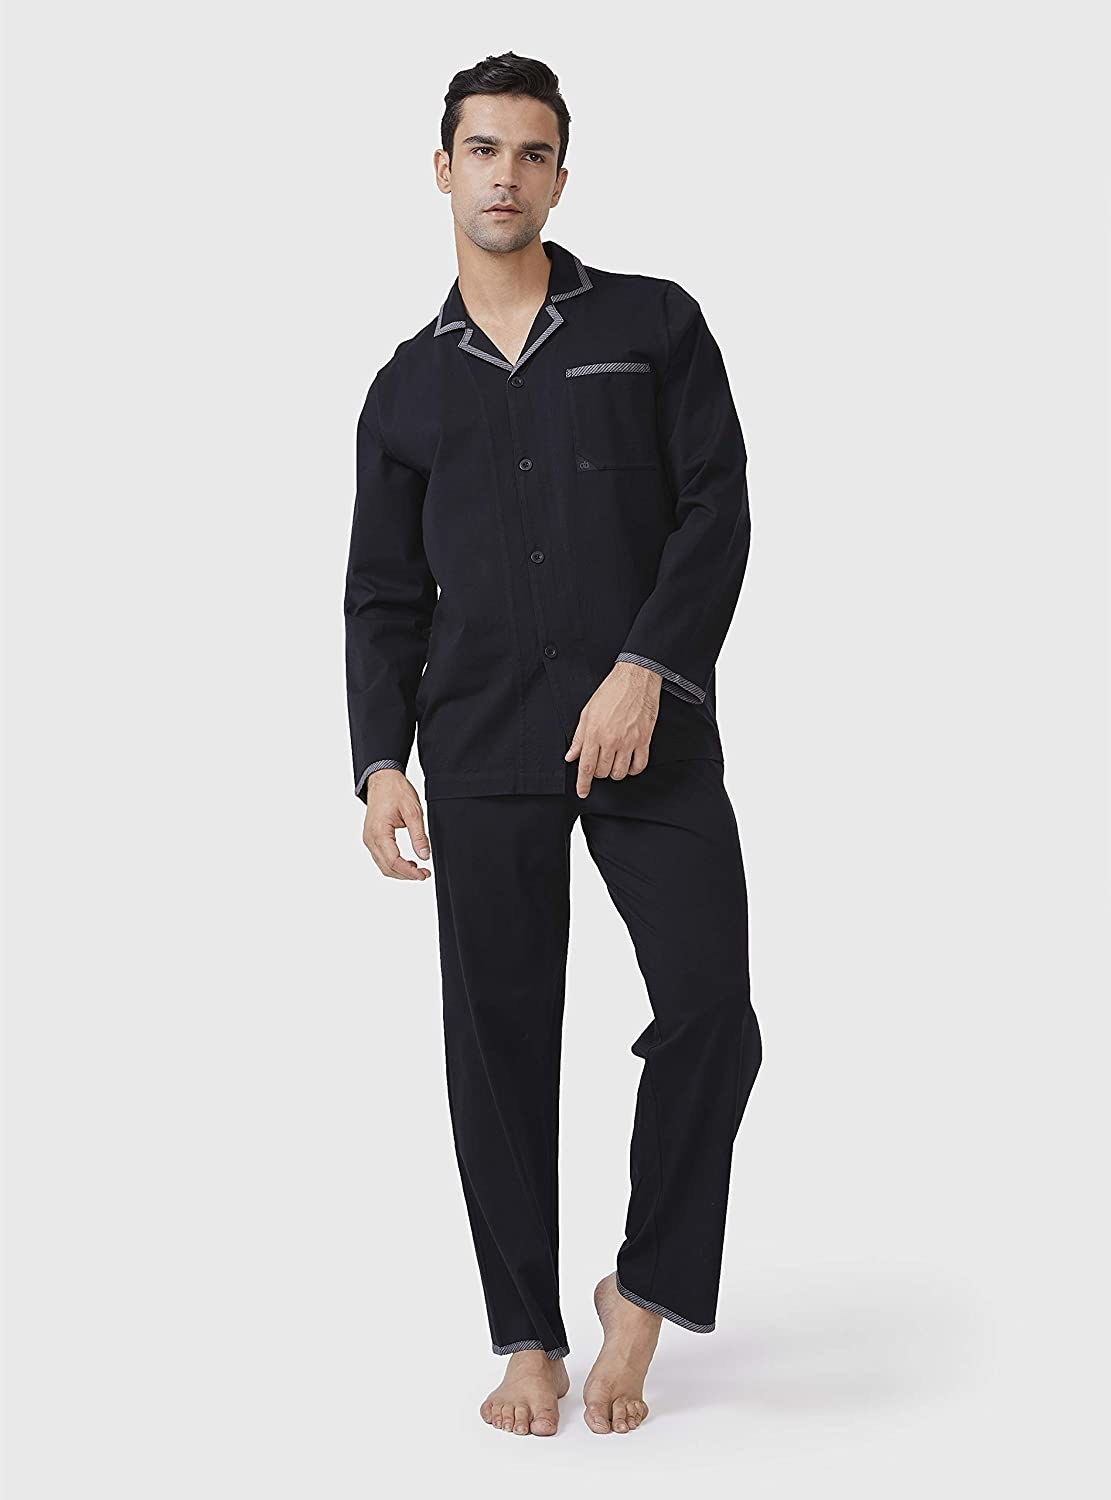 a model in black long sleeve and pants pajamas with gray trim